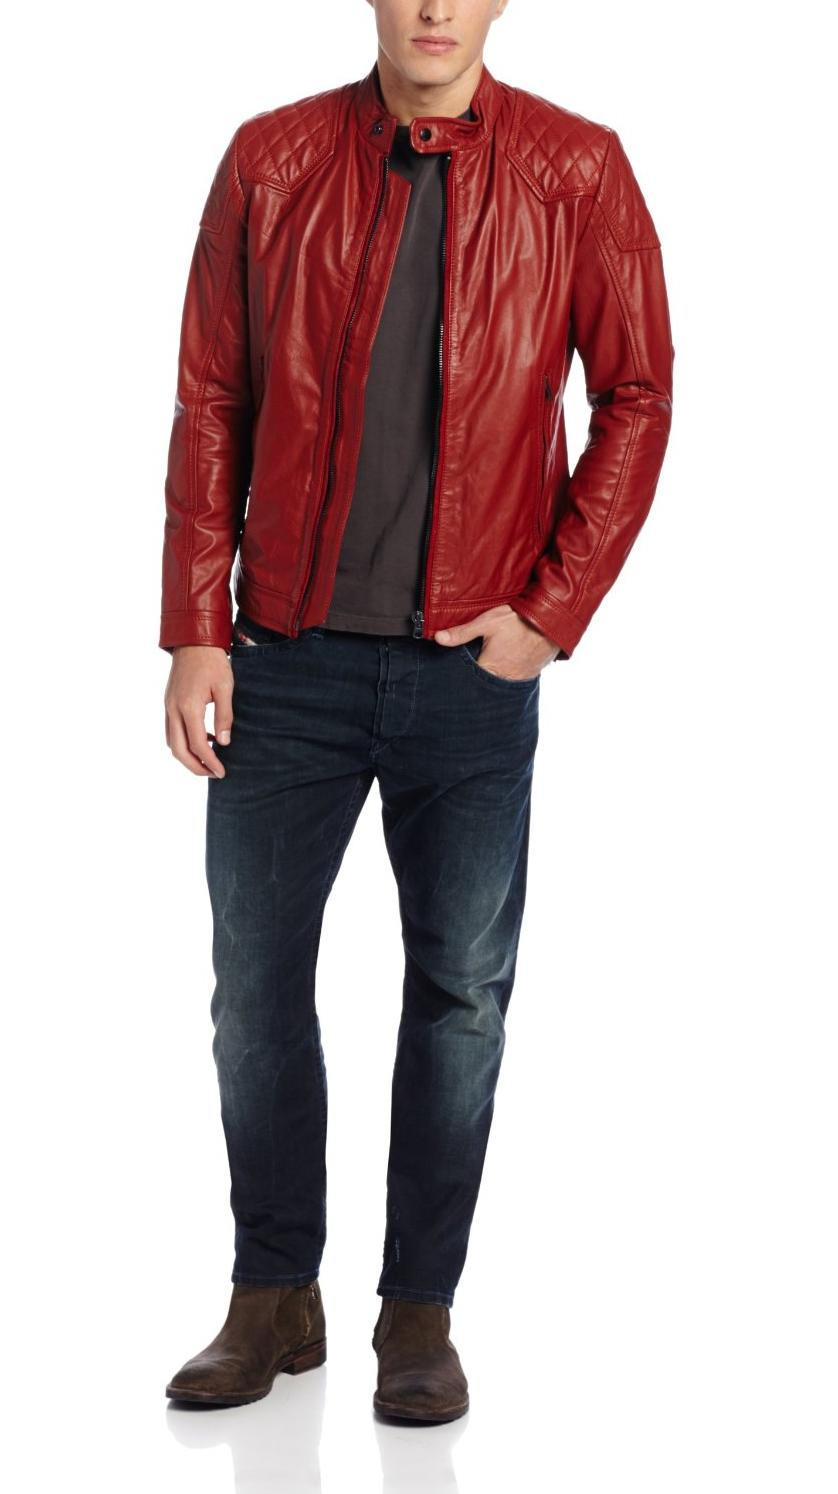 Red leather jackets for men